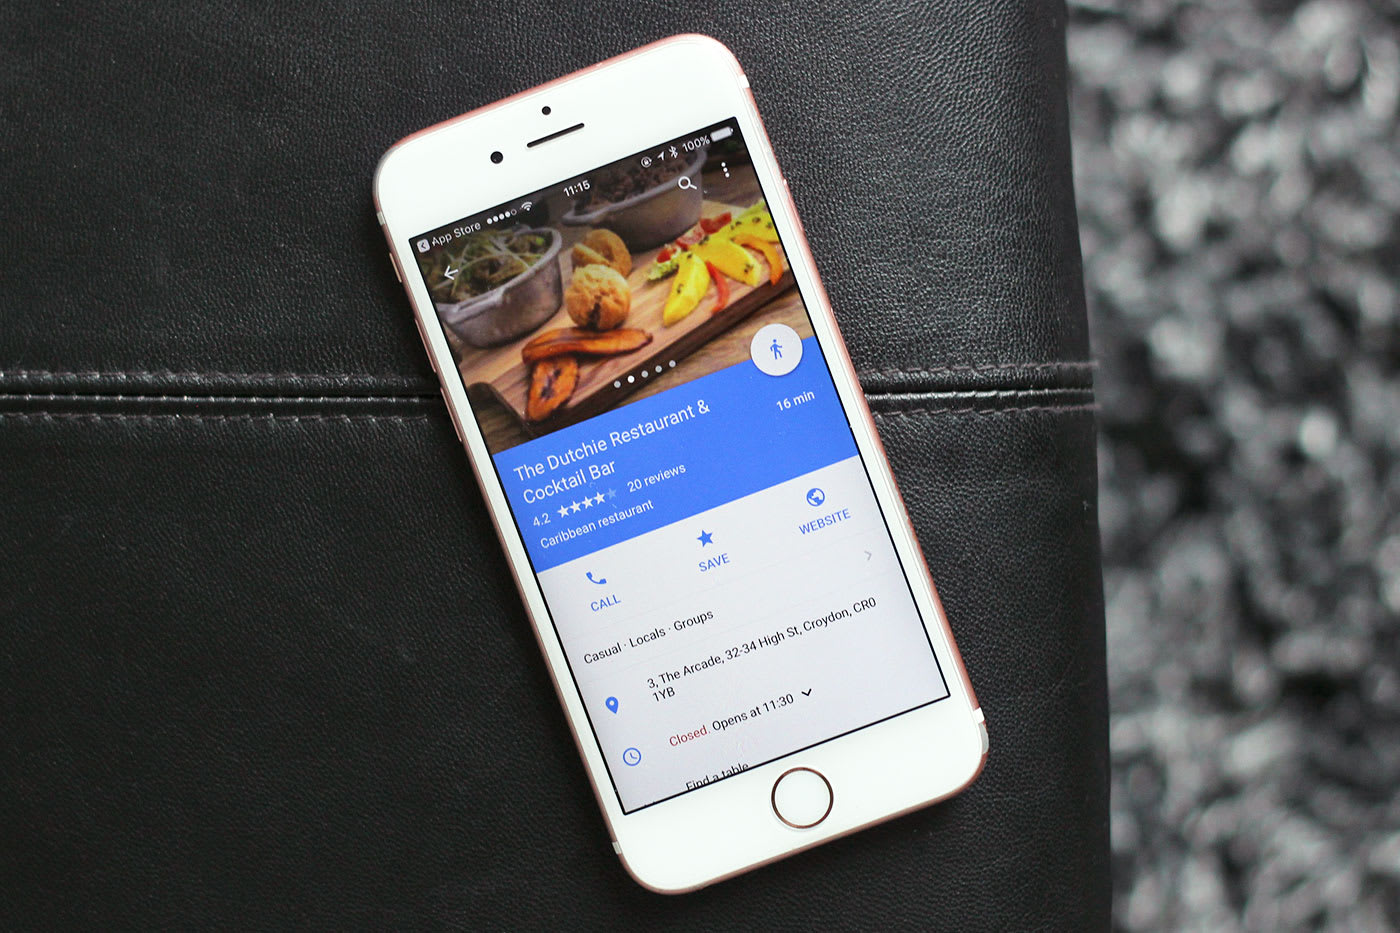 Google adds a food delivery shortcut to Maps for iOS | Engadget on manufacturing map, tax map, proxy map, tracking map, old world pirate map, albion map, inventory map, refugee map, ancient world map, documentation map, training map, safety map, development map, planning map, strategy map, research map, shipping map, service map, shipment map,